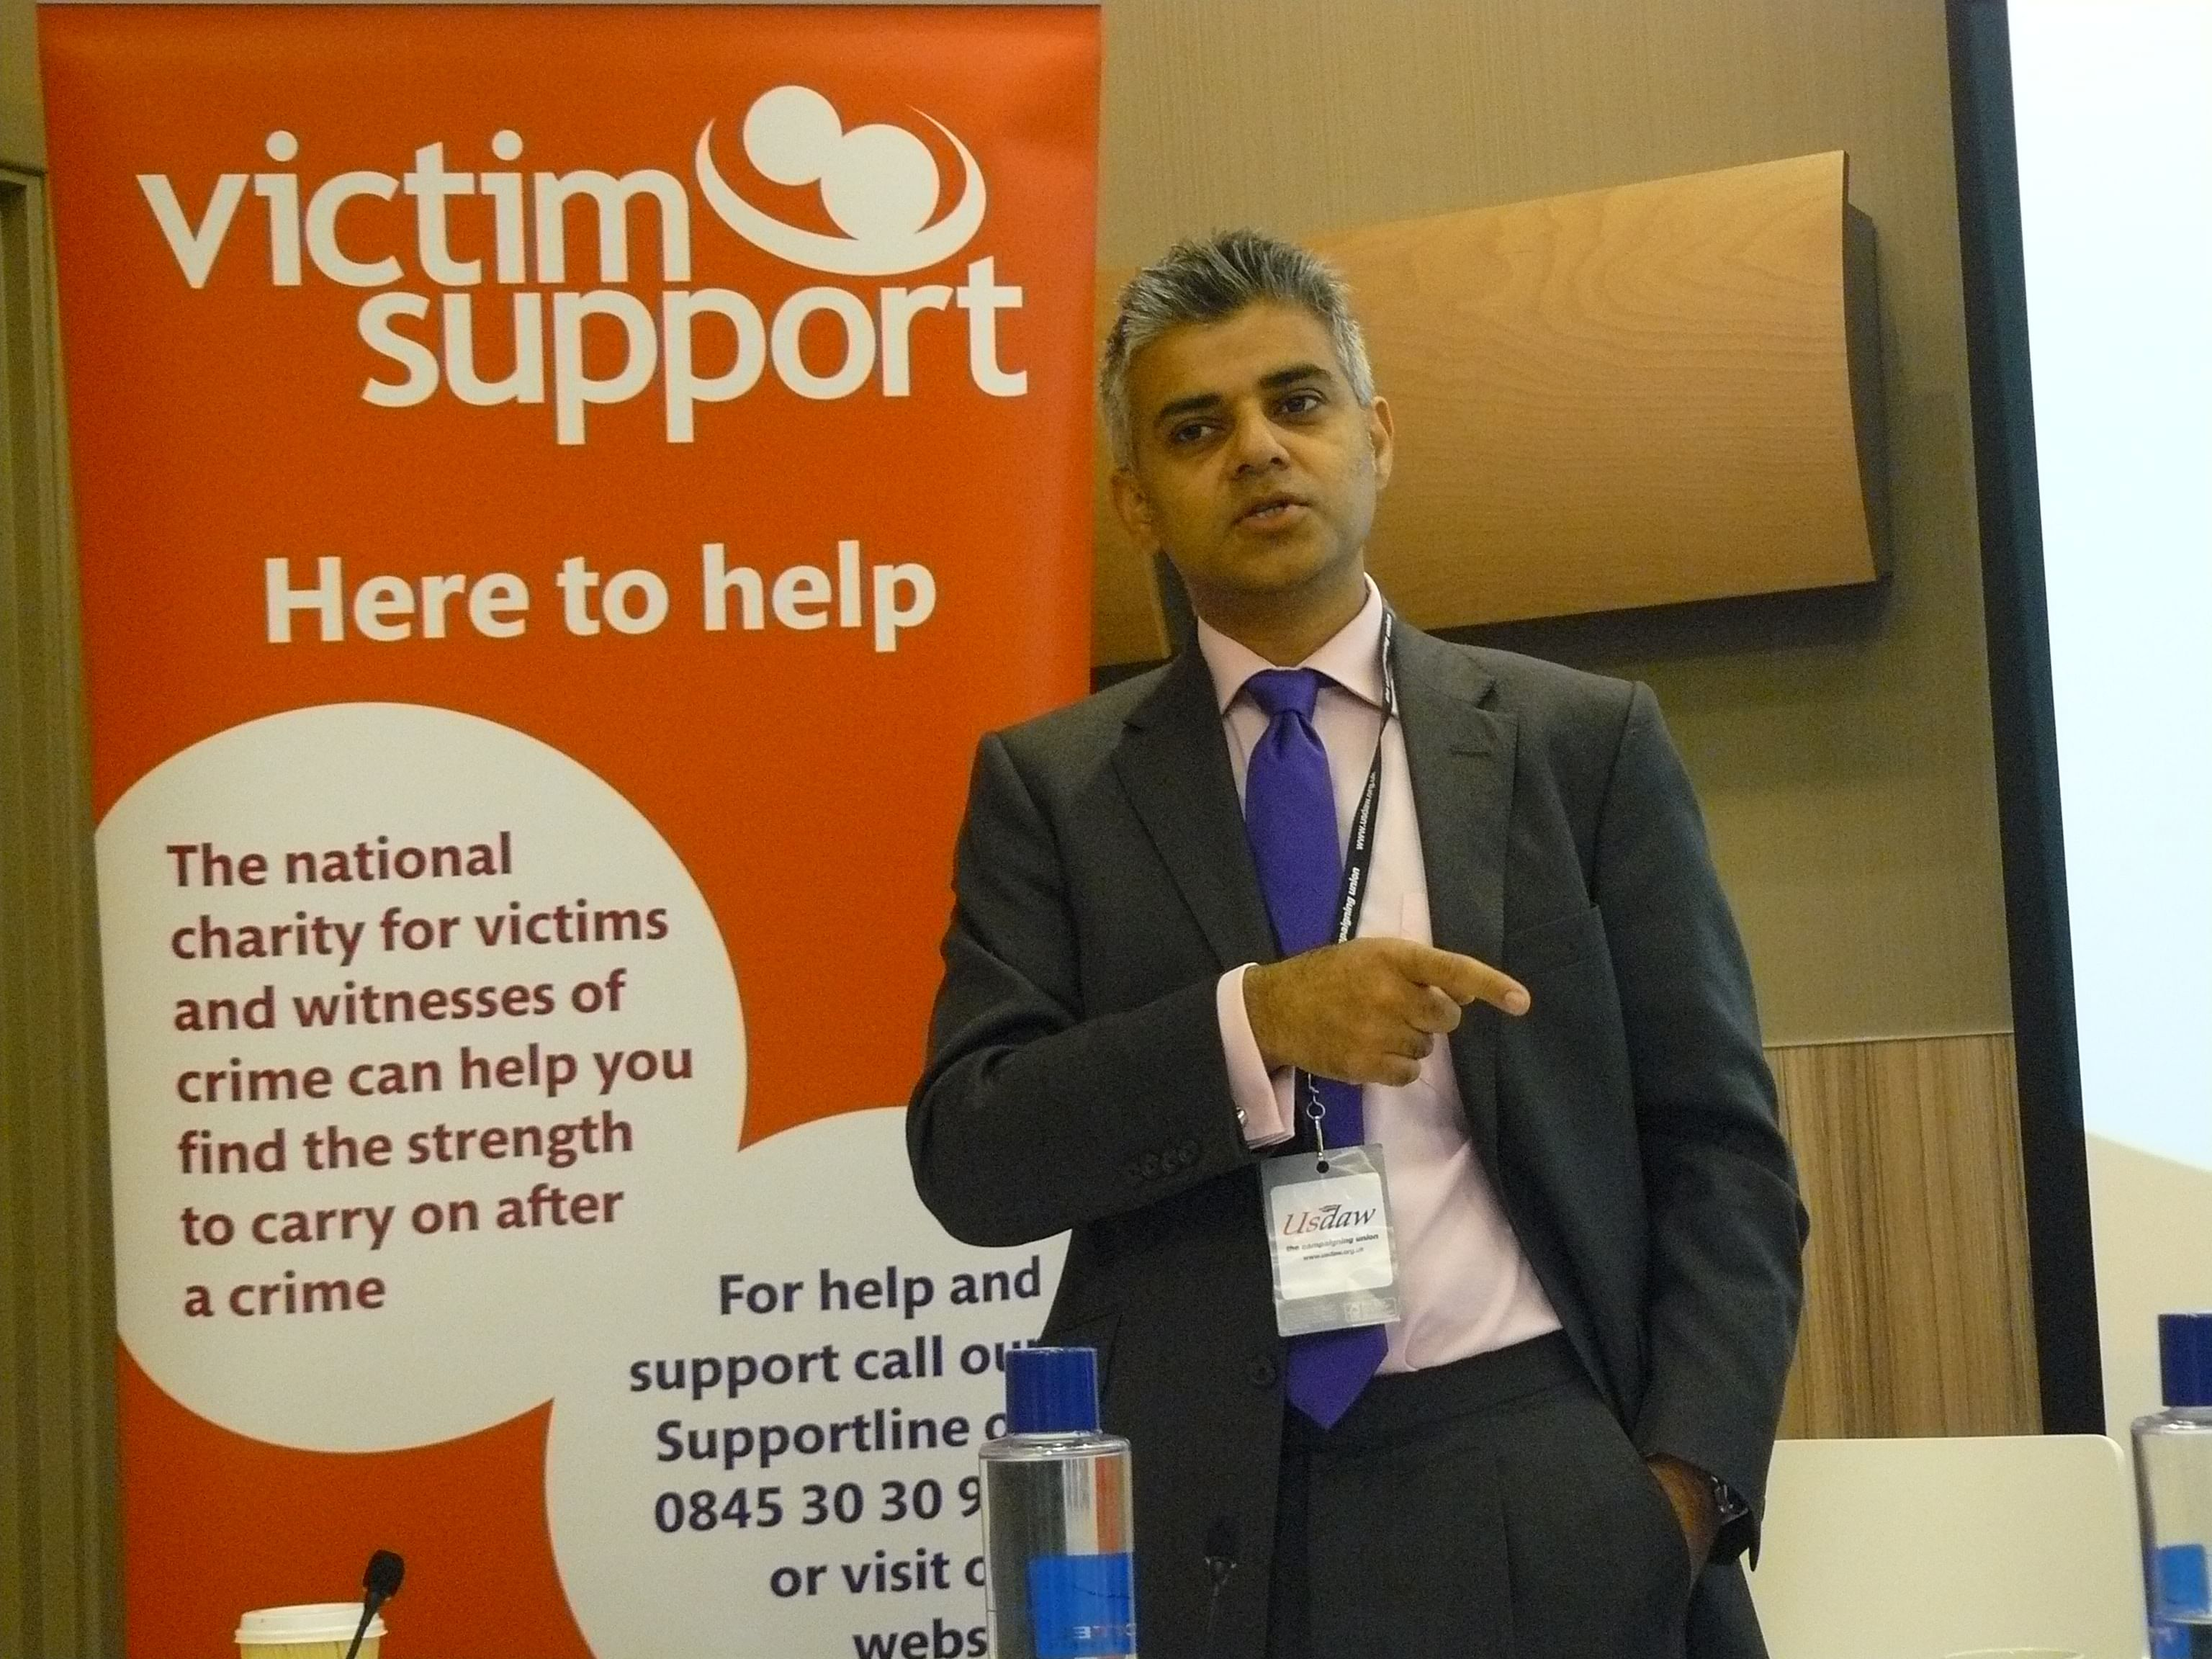 Mayor of London, Sadiq Khan (Source: Wikimedia Commons)